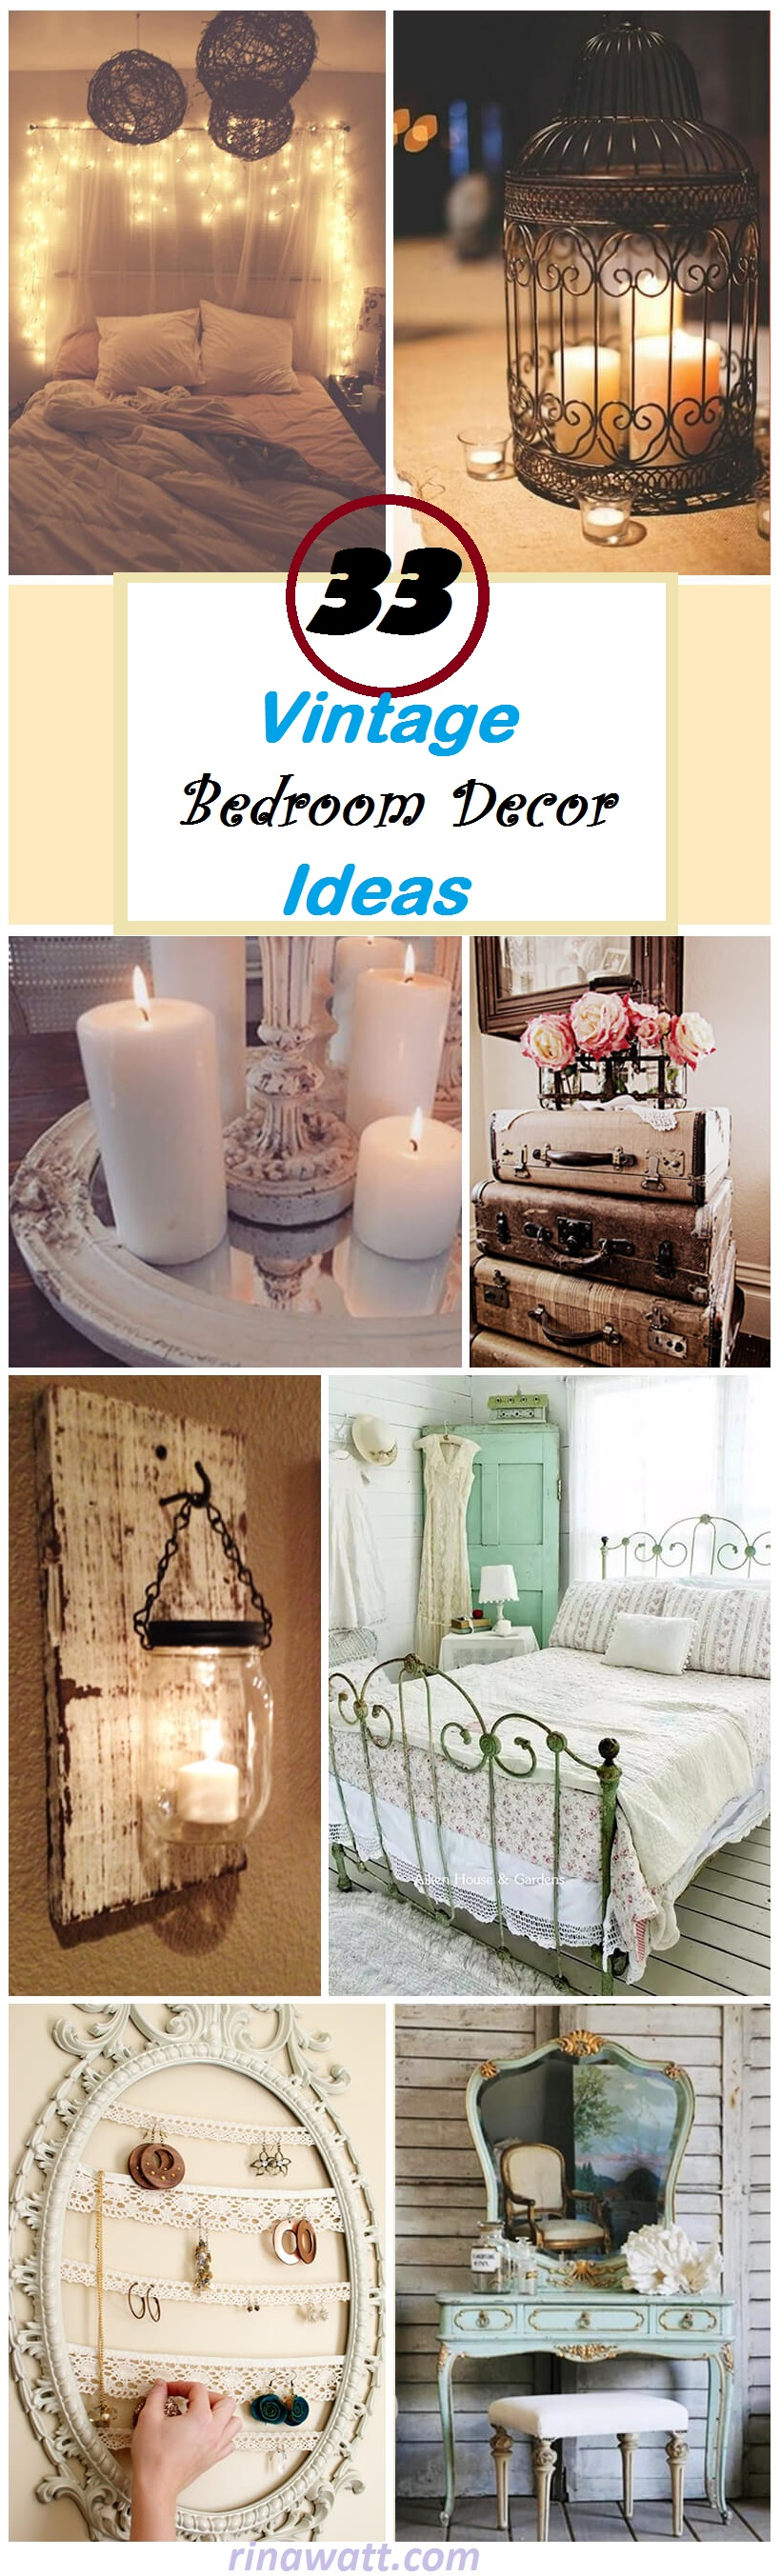 33 Vintage Bedroom Decor Ideas to Turn your Room into a ...